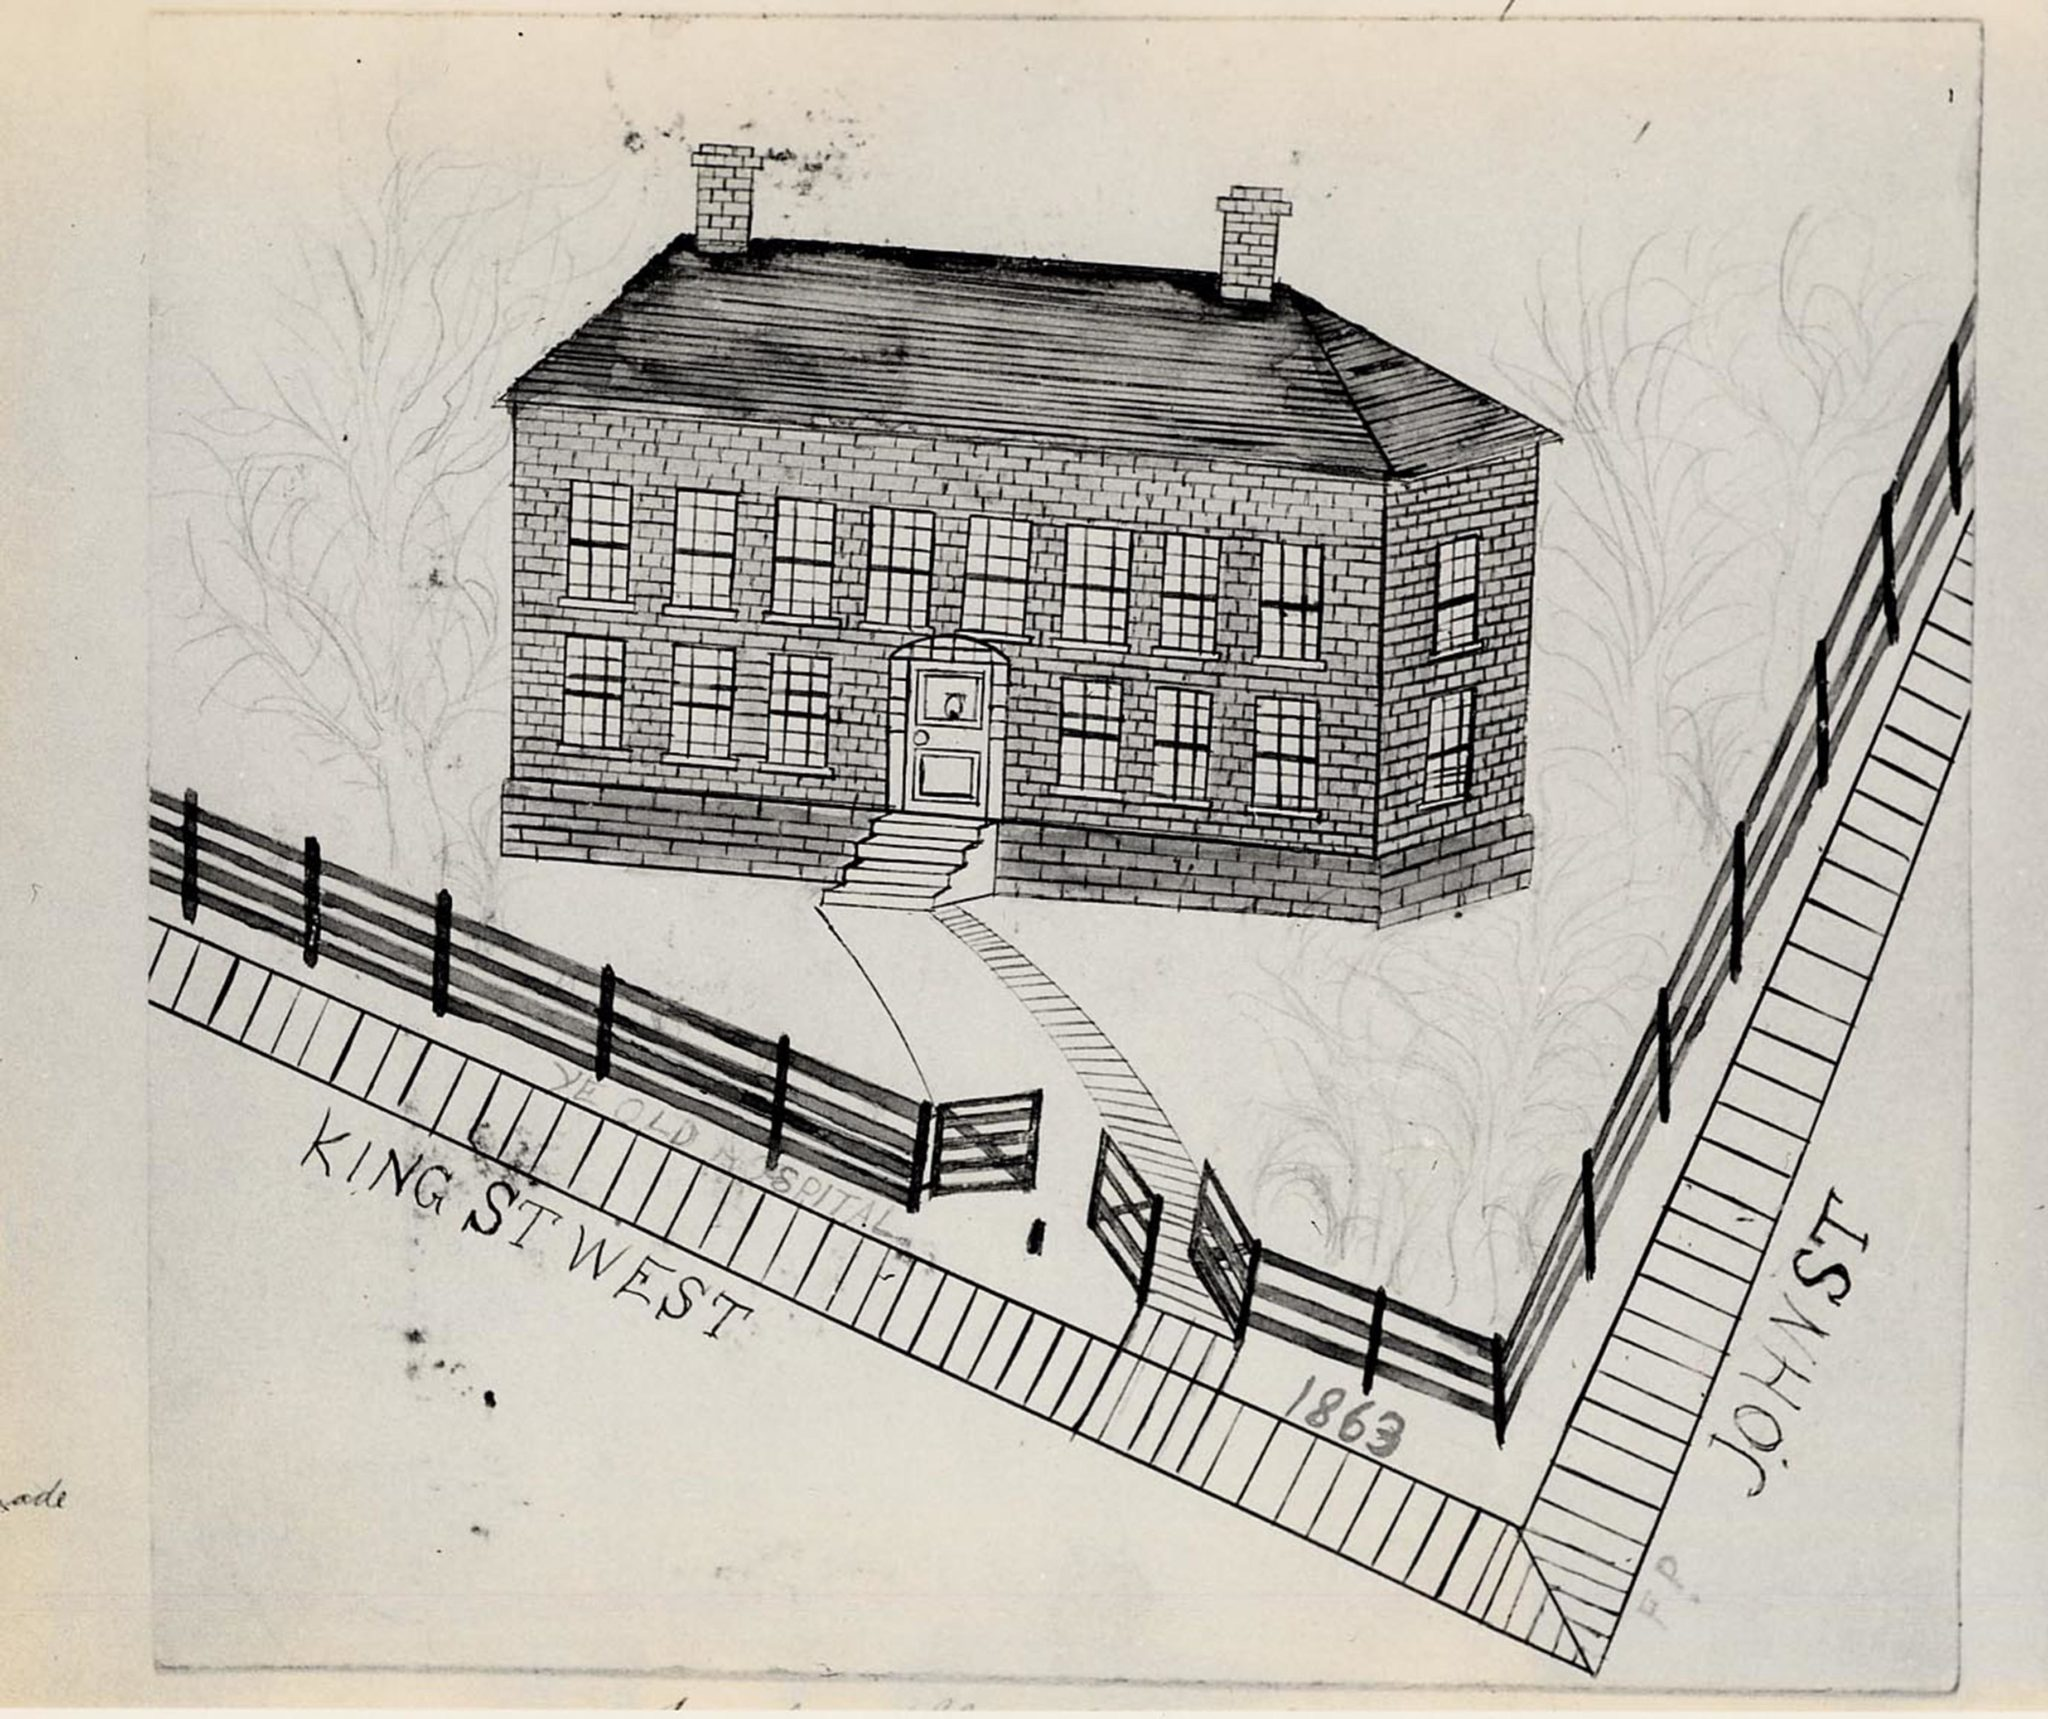 Historical drawing of the original Toronto General Hospital building.